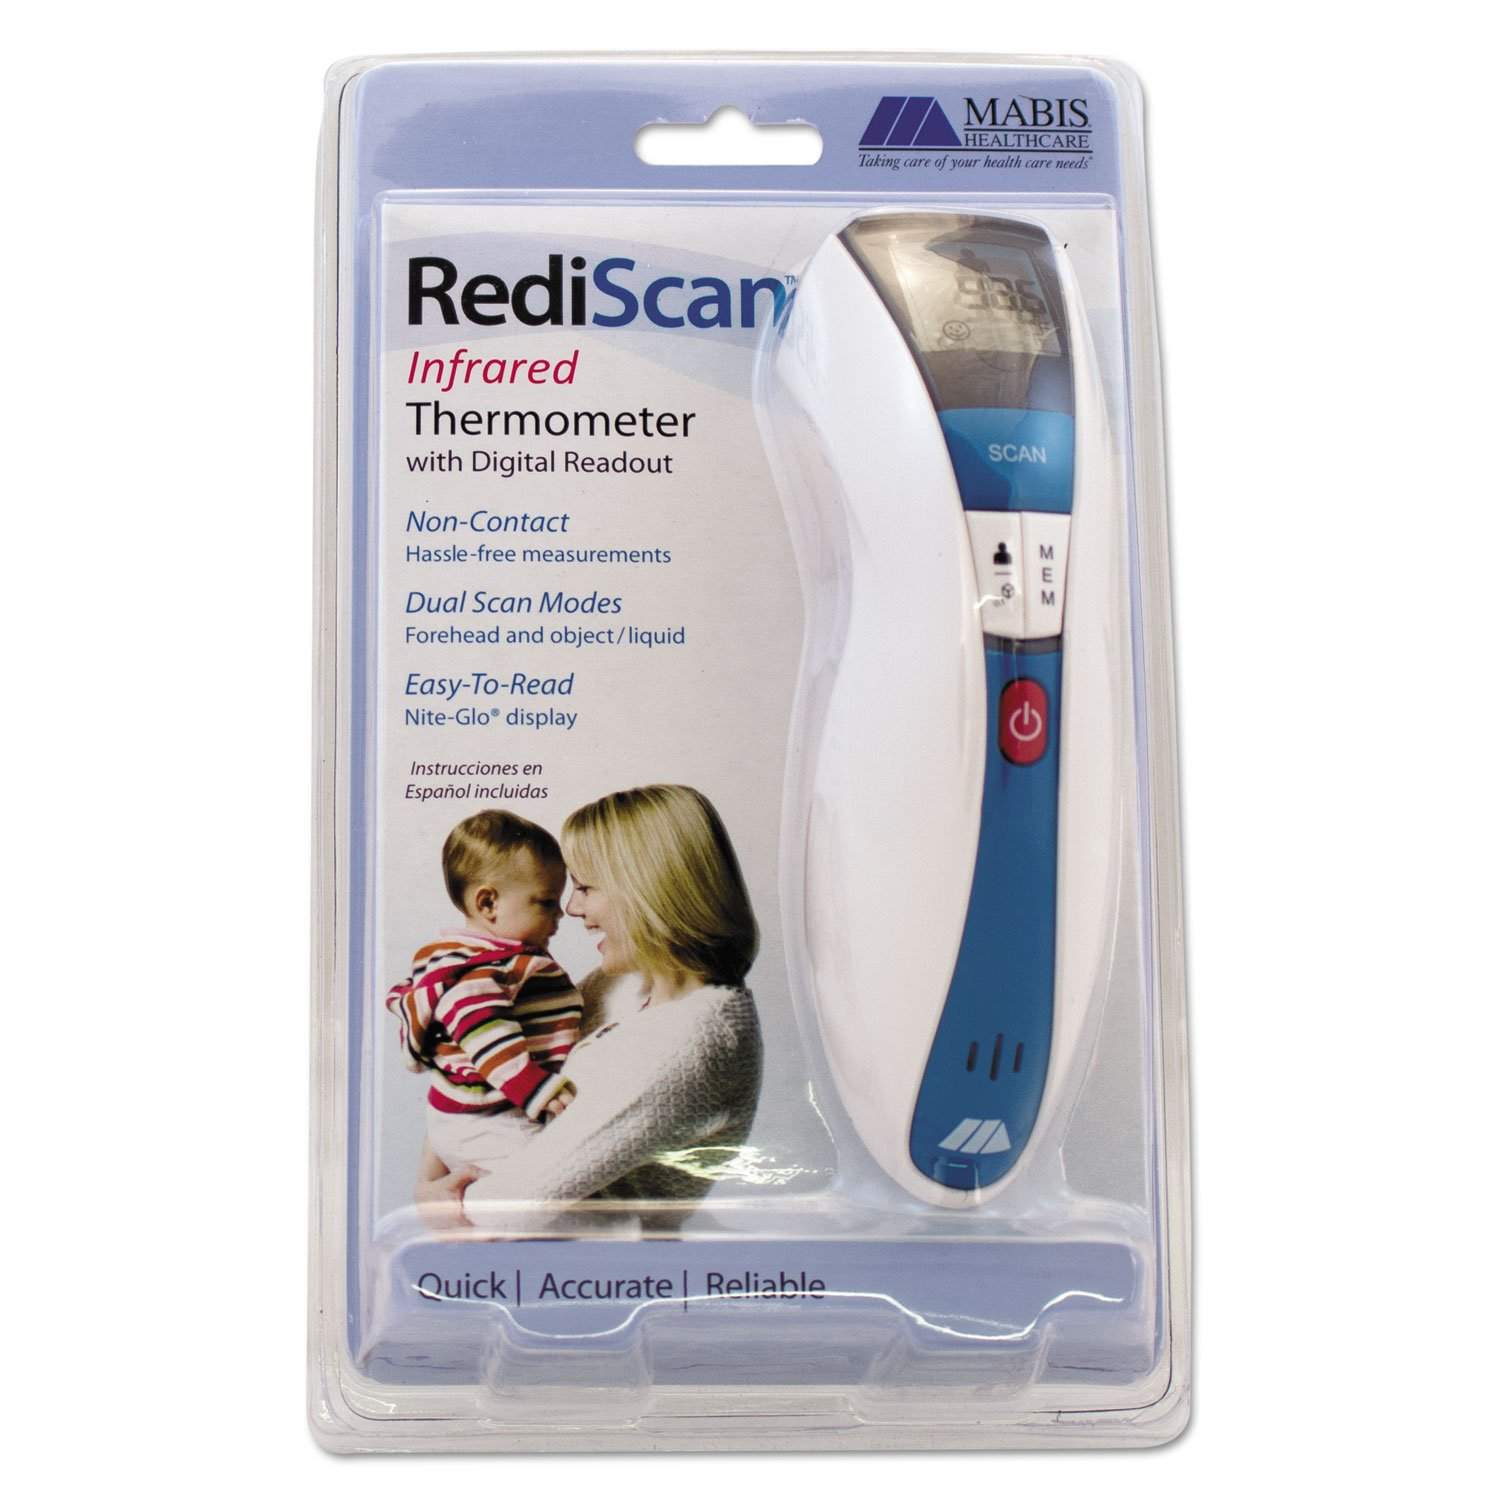 Amazon.com: MABIS 18535000 RediScan Infrared Thermometer w/Digital Readout White/Blue 50F-122F: Health & Personal Care